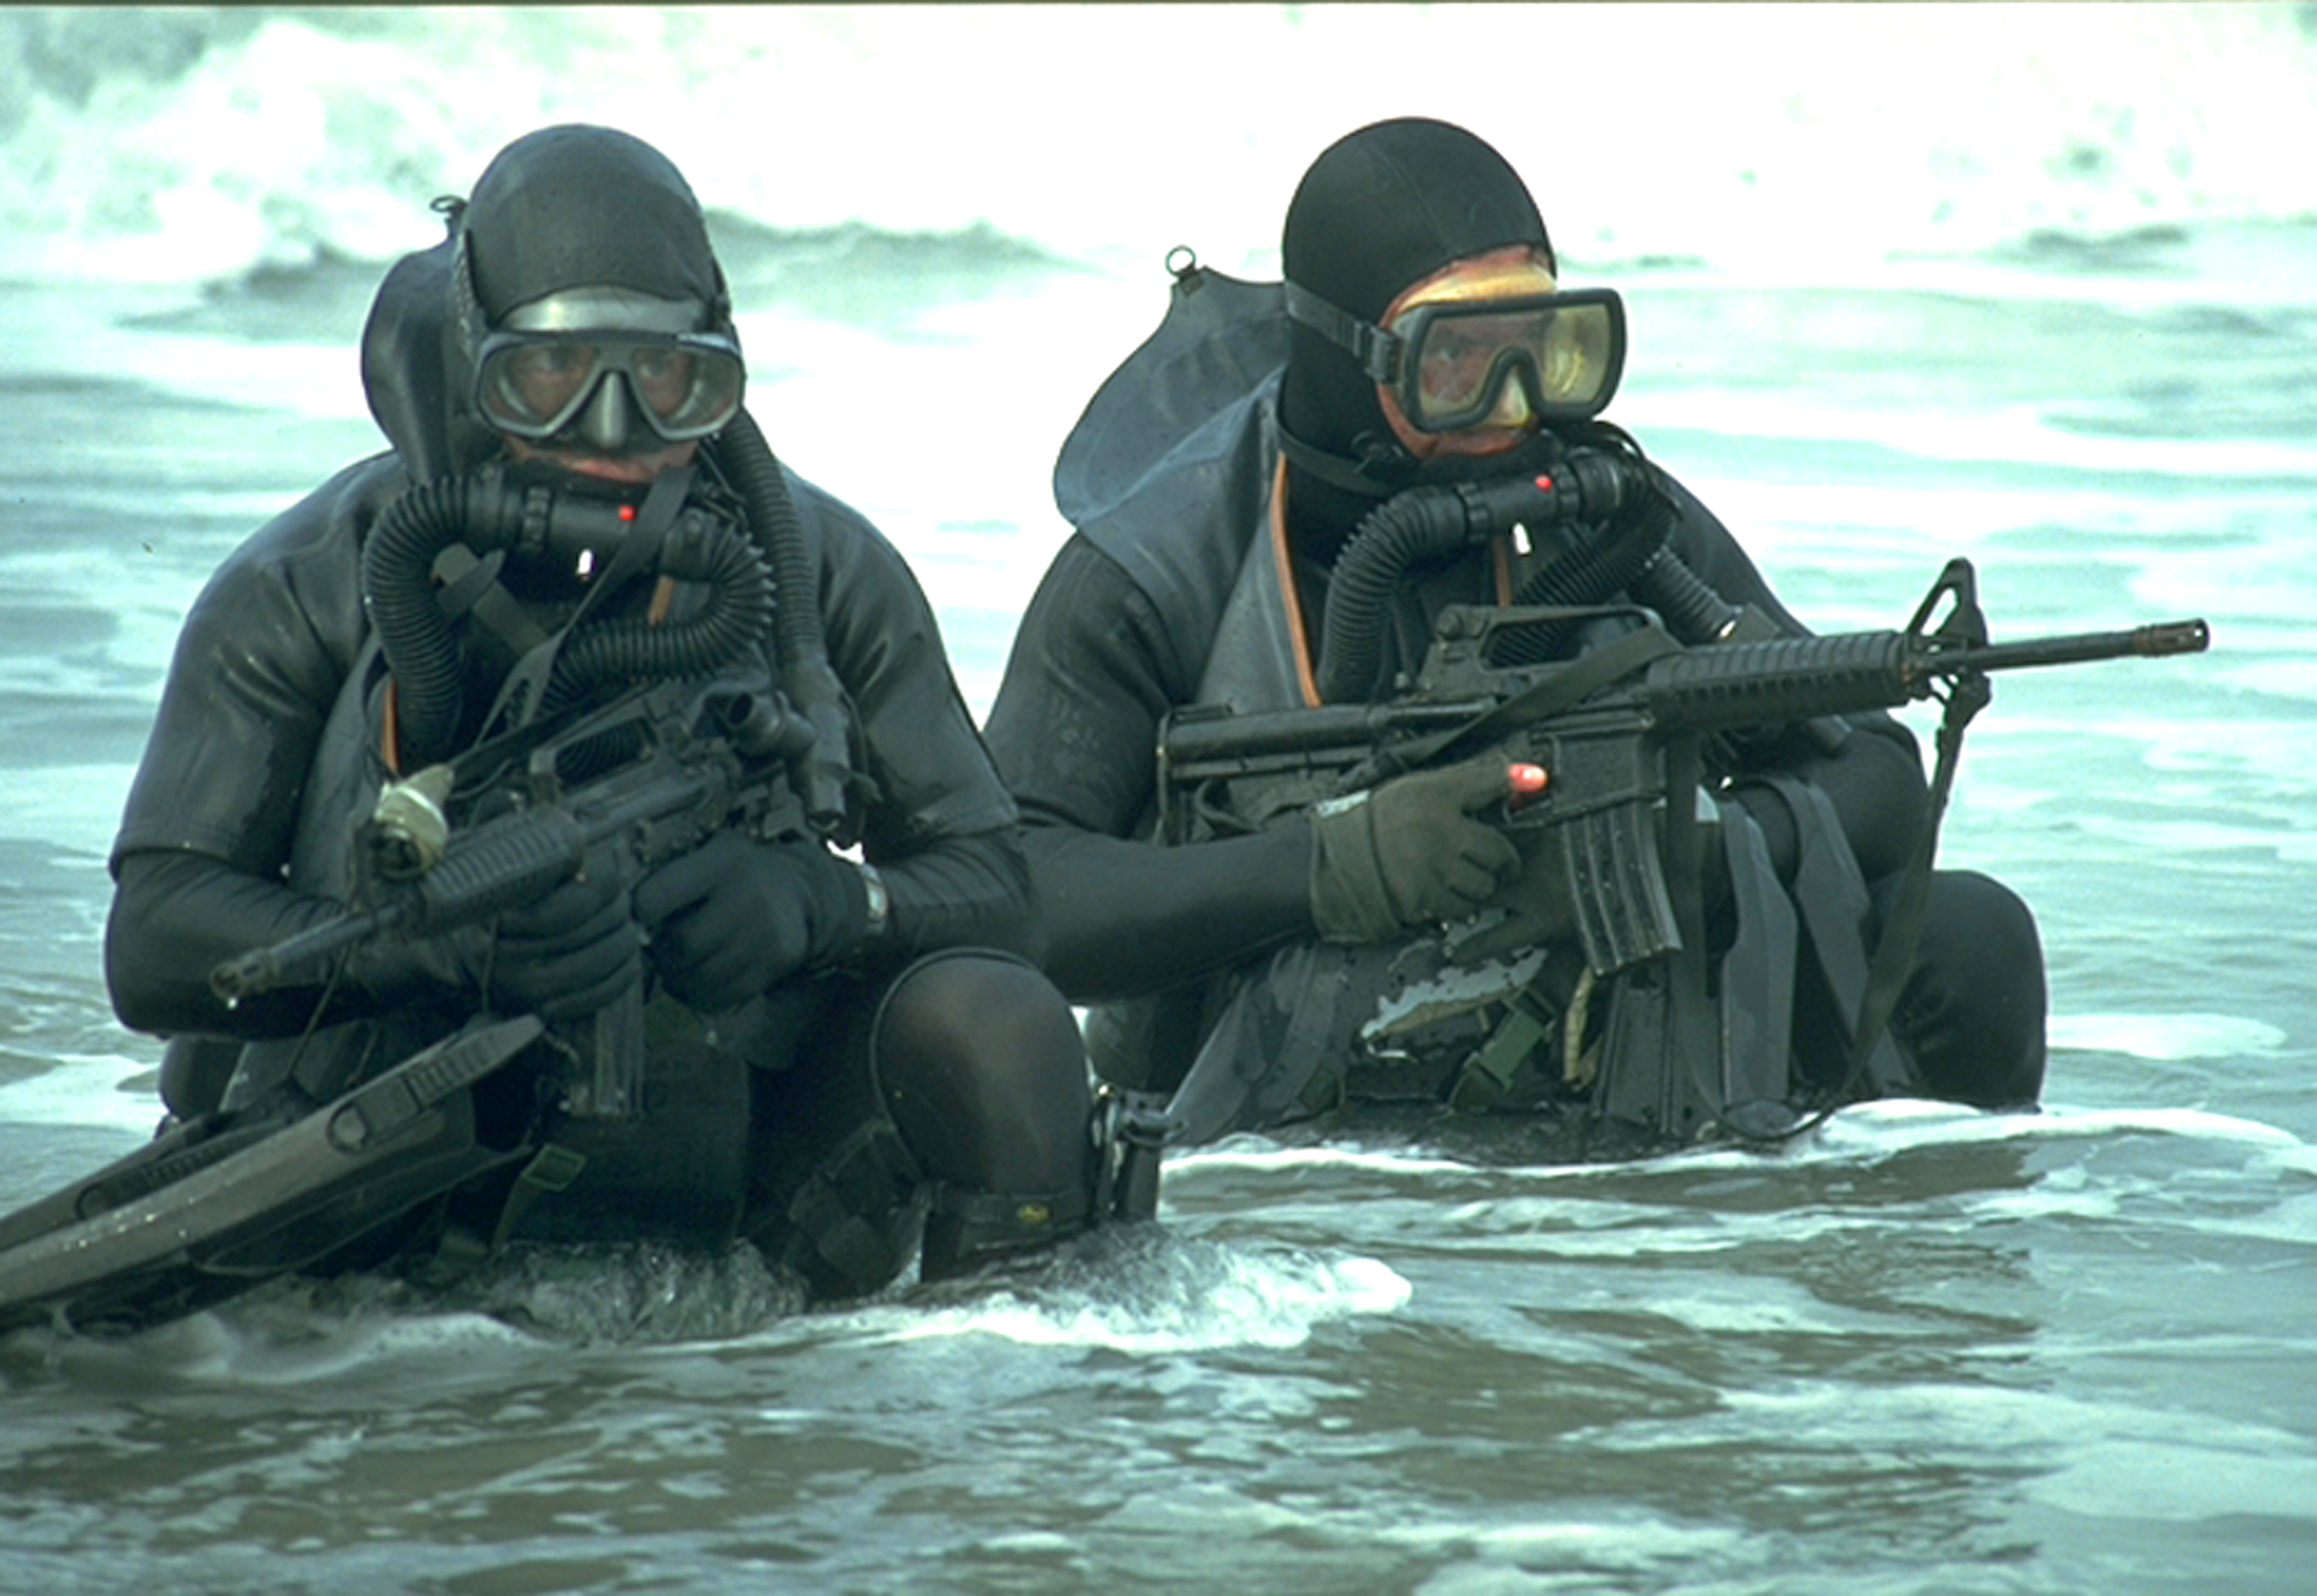 Navy Seal Team 6 - osama was no match image - Armies of the World